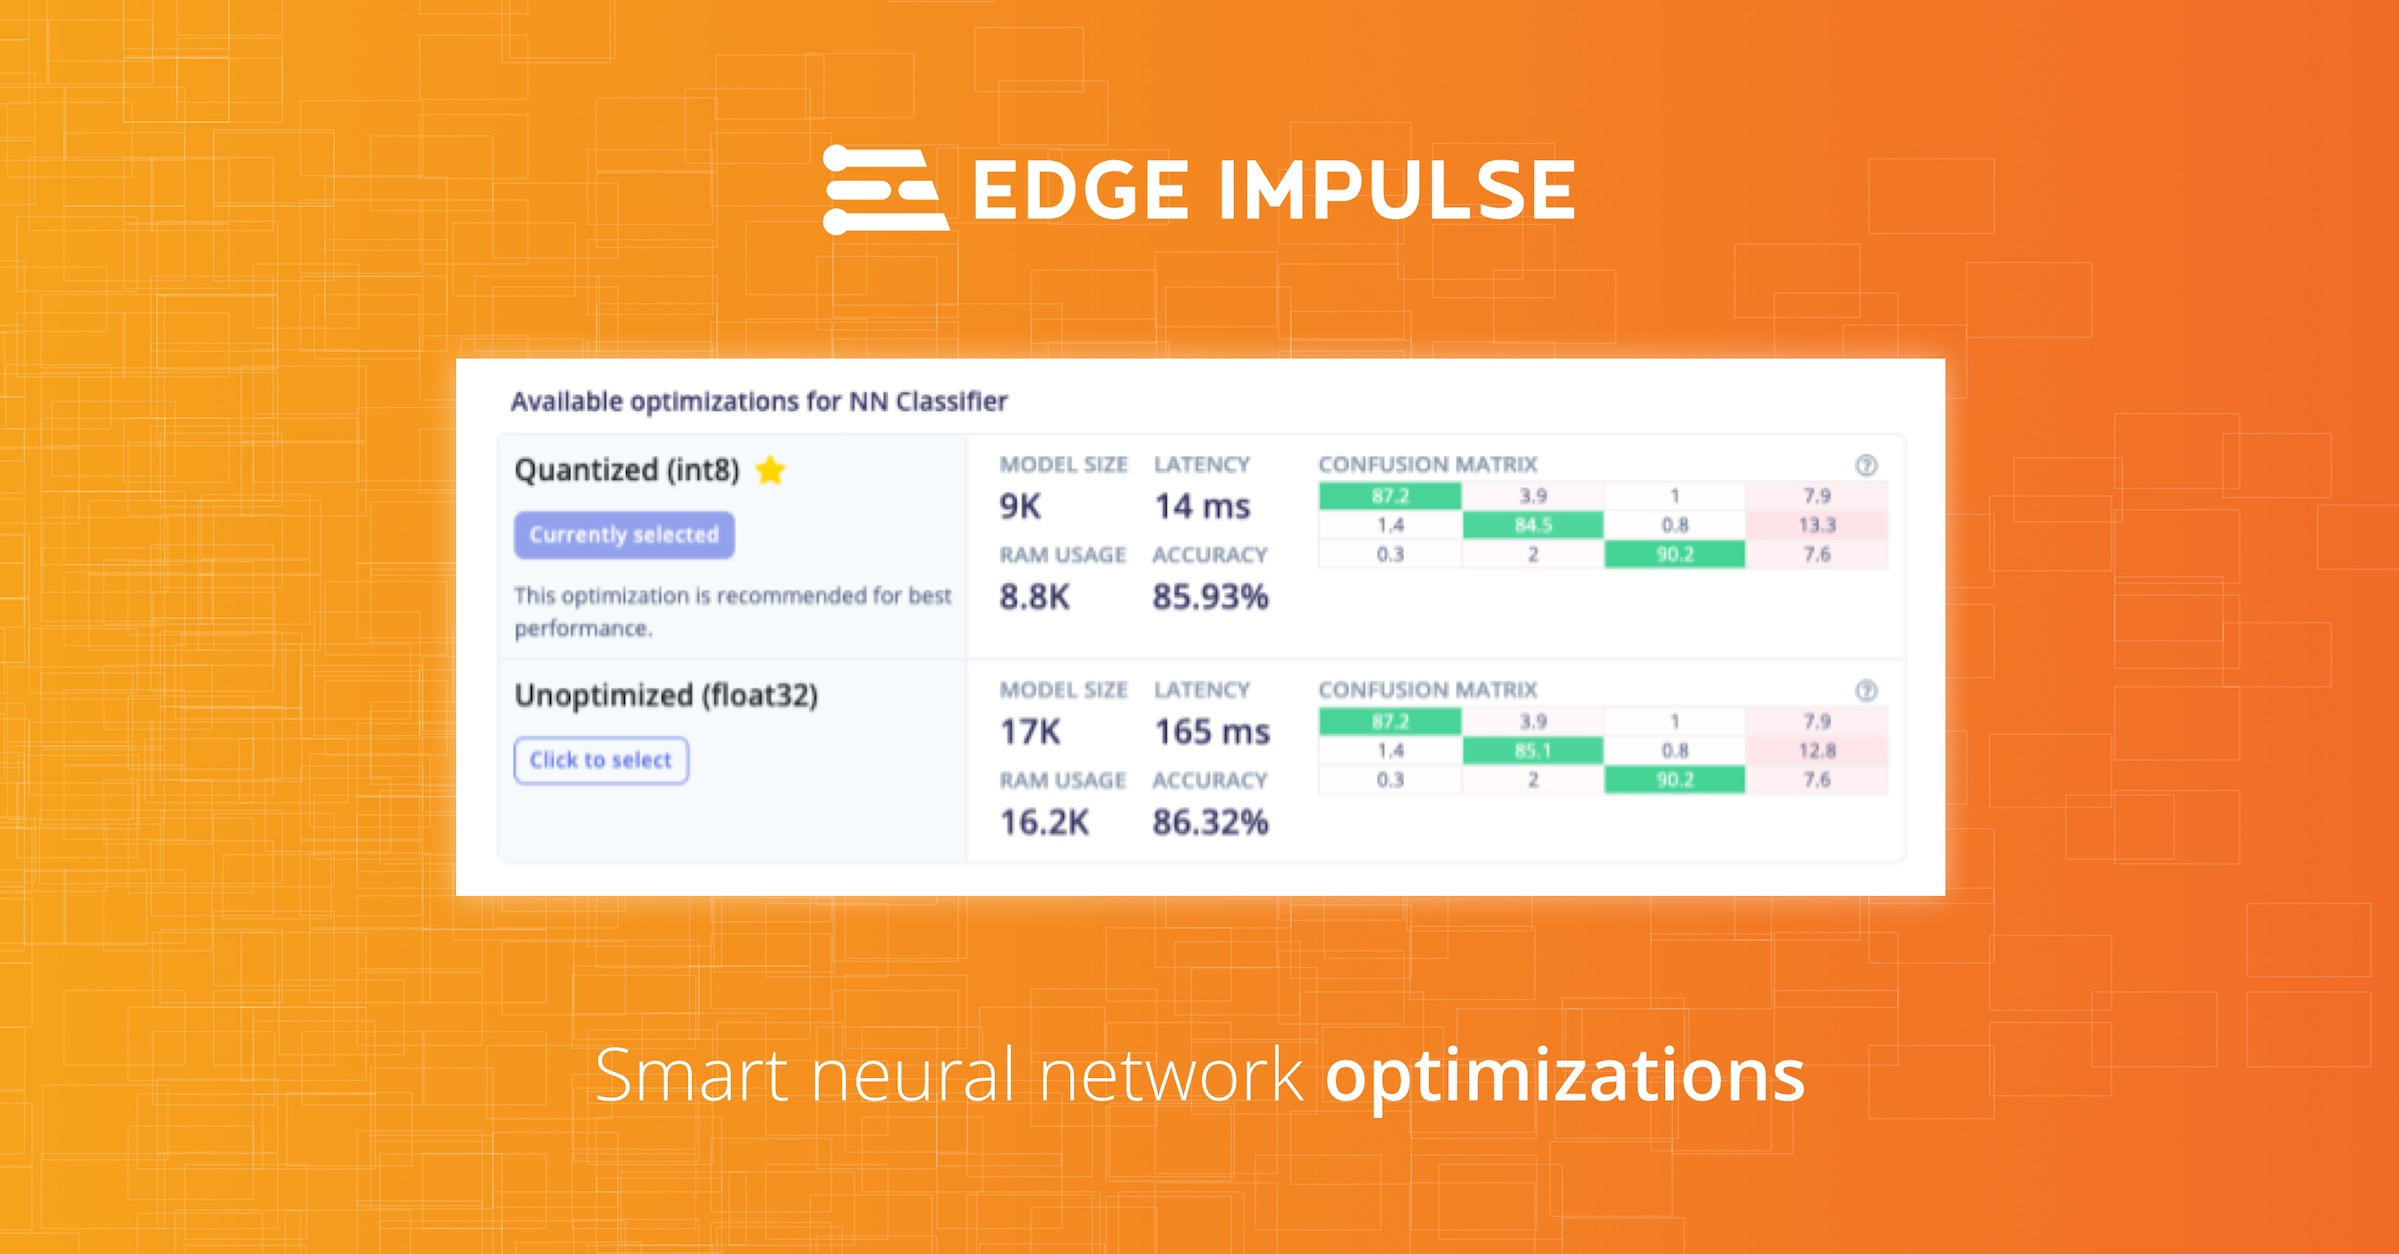 Better insights with the new model optimization UI